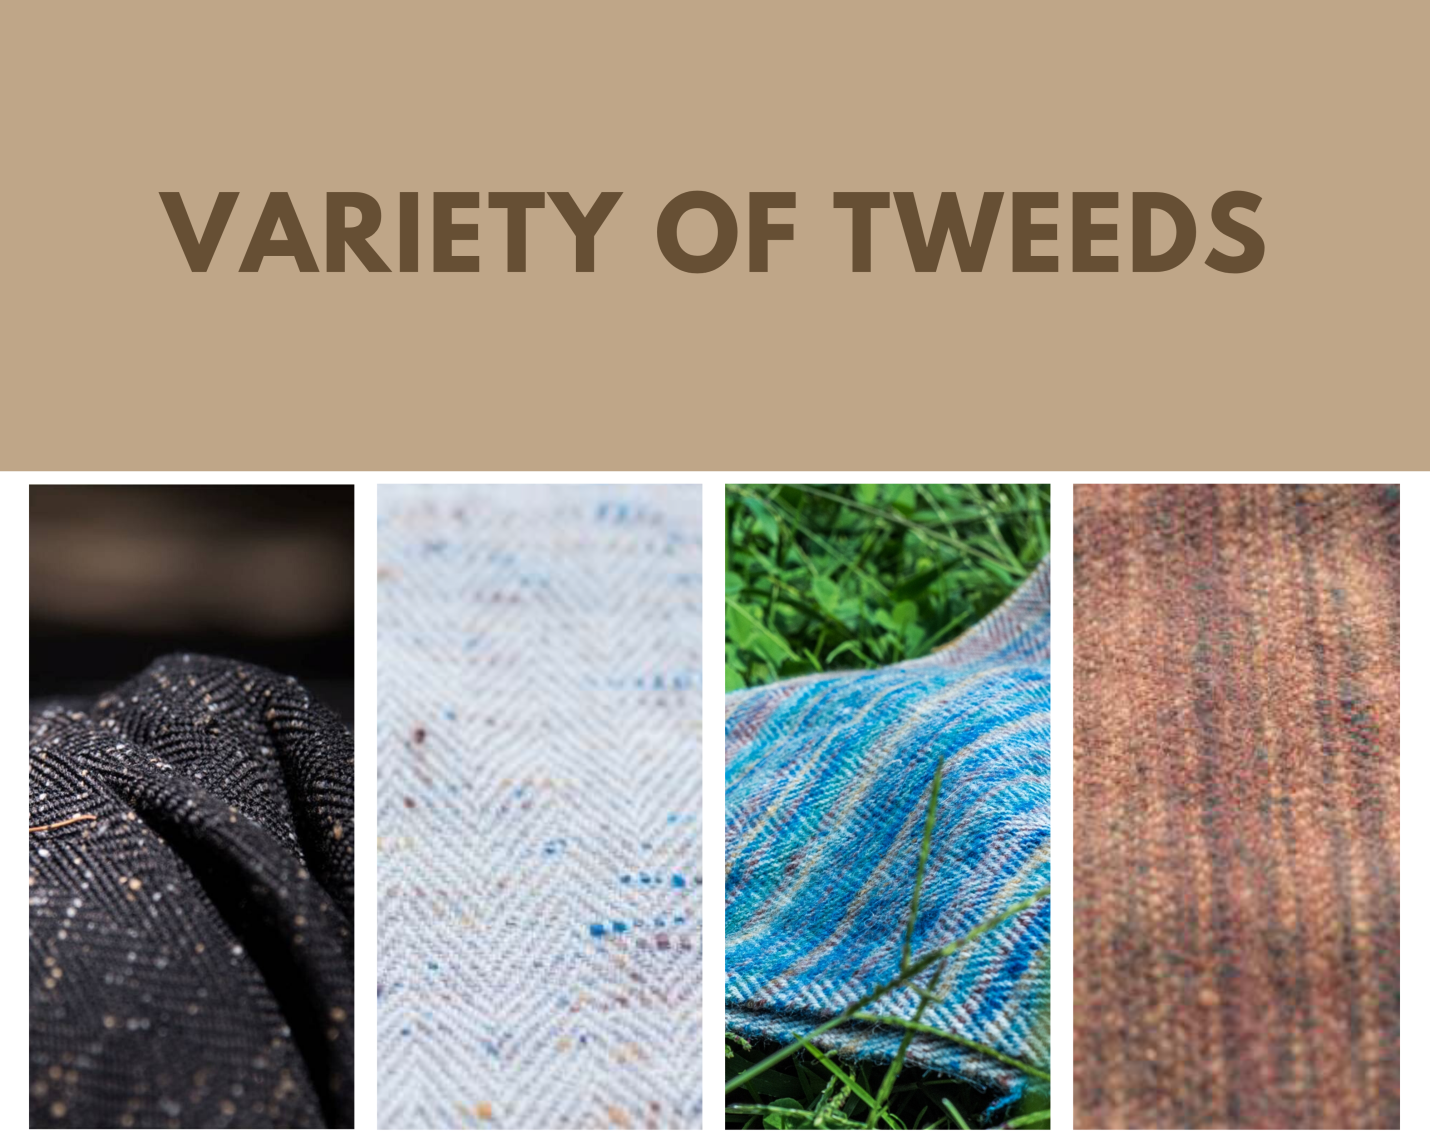 E:\desktop and work\Astha\TWEED_KINNAUR HANDCRAFTED\BLOGS\blog cover designs\Brown and Green Women Autumn Clothes Fashion Photo Collage.png